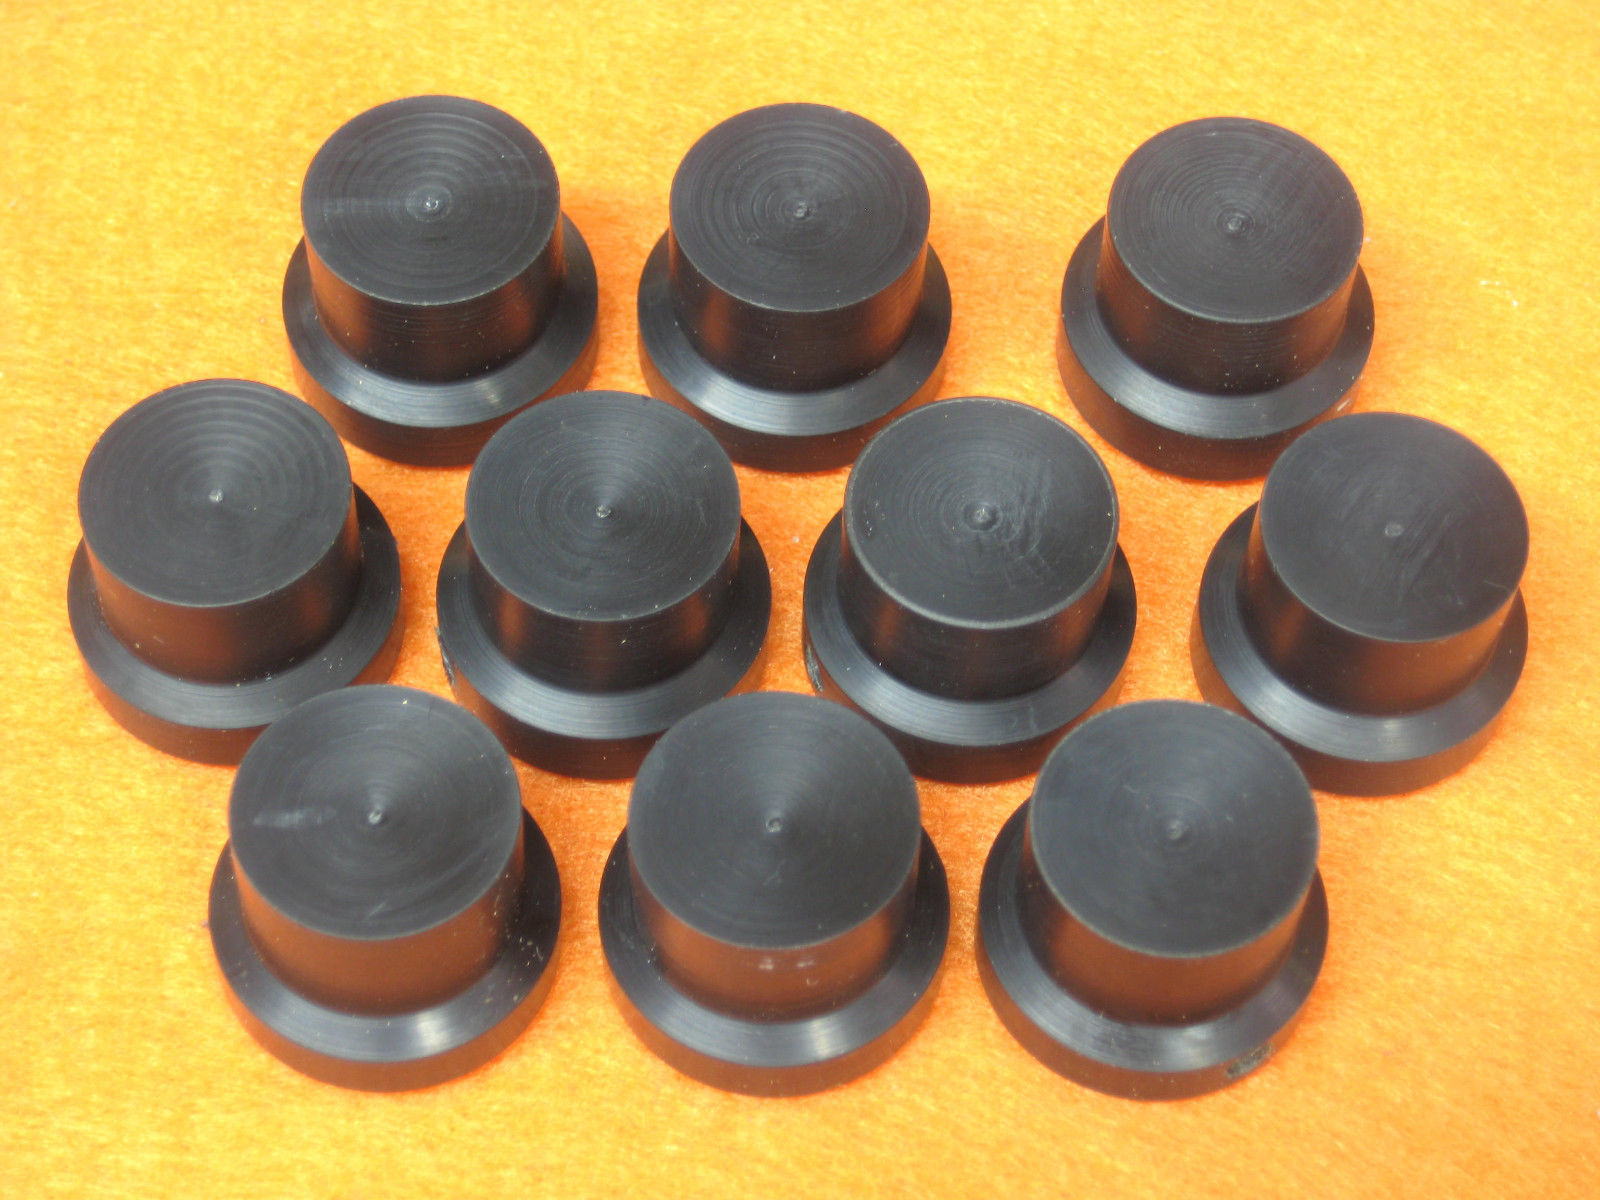 Knobs (one), Radio/Guitar, Hand-Crafted, Black with 4mm Slot-Head Set Screw, #31